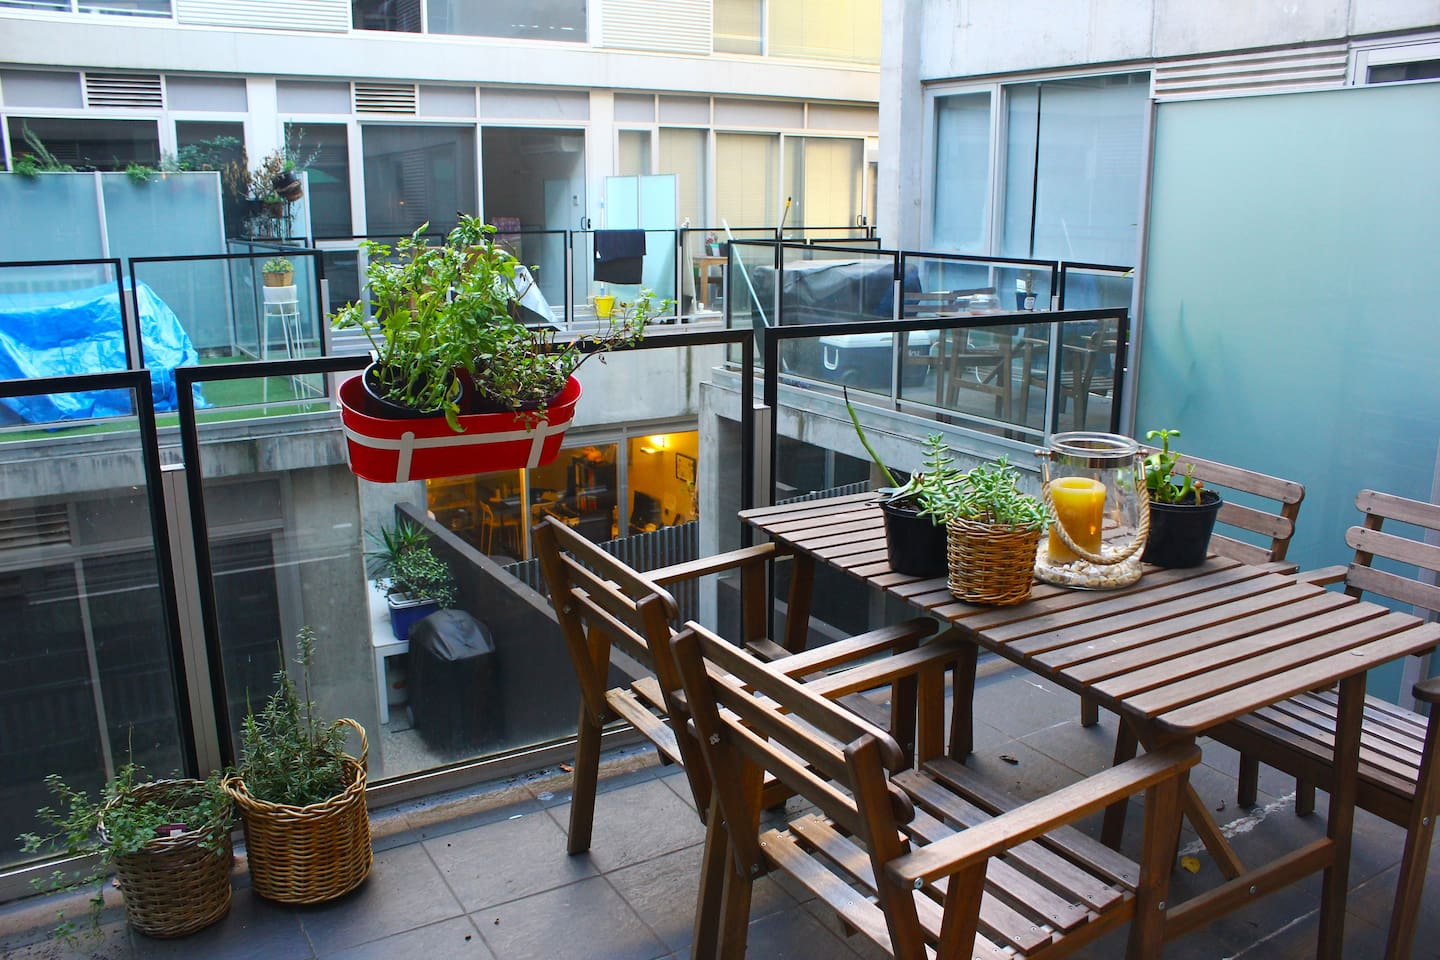 Outdoor balcony area gets great sunlight mid morning.